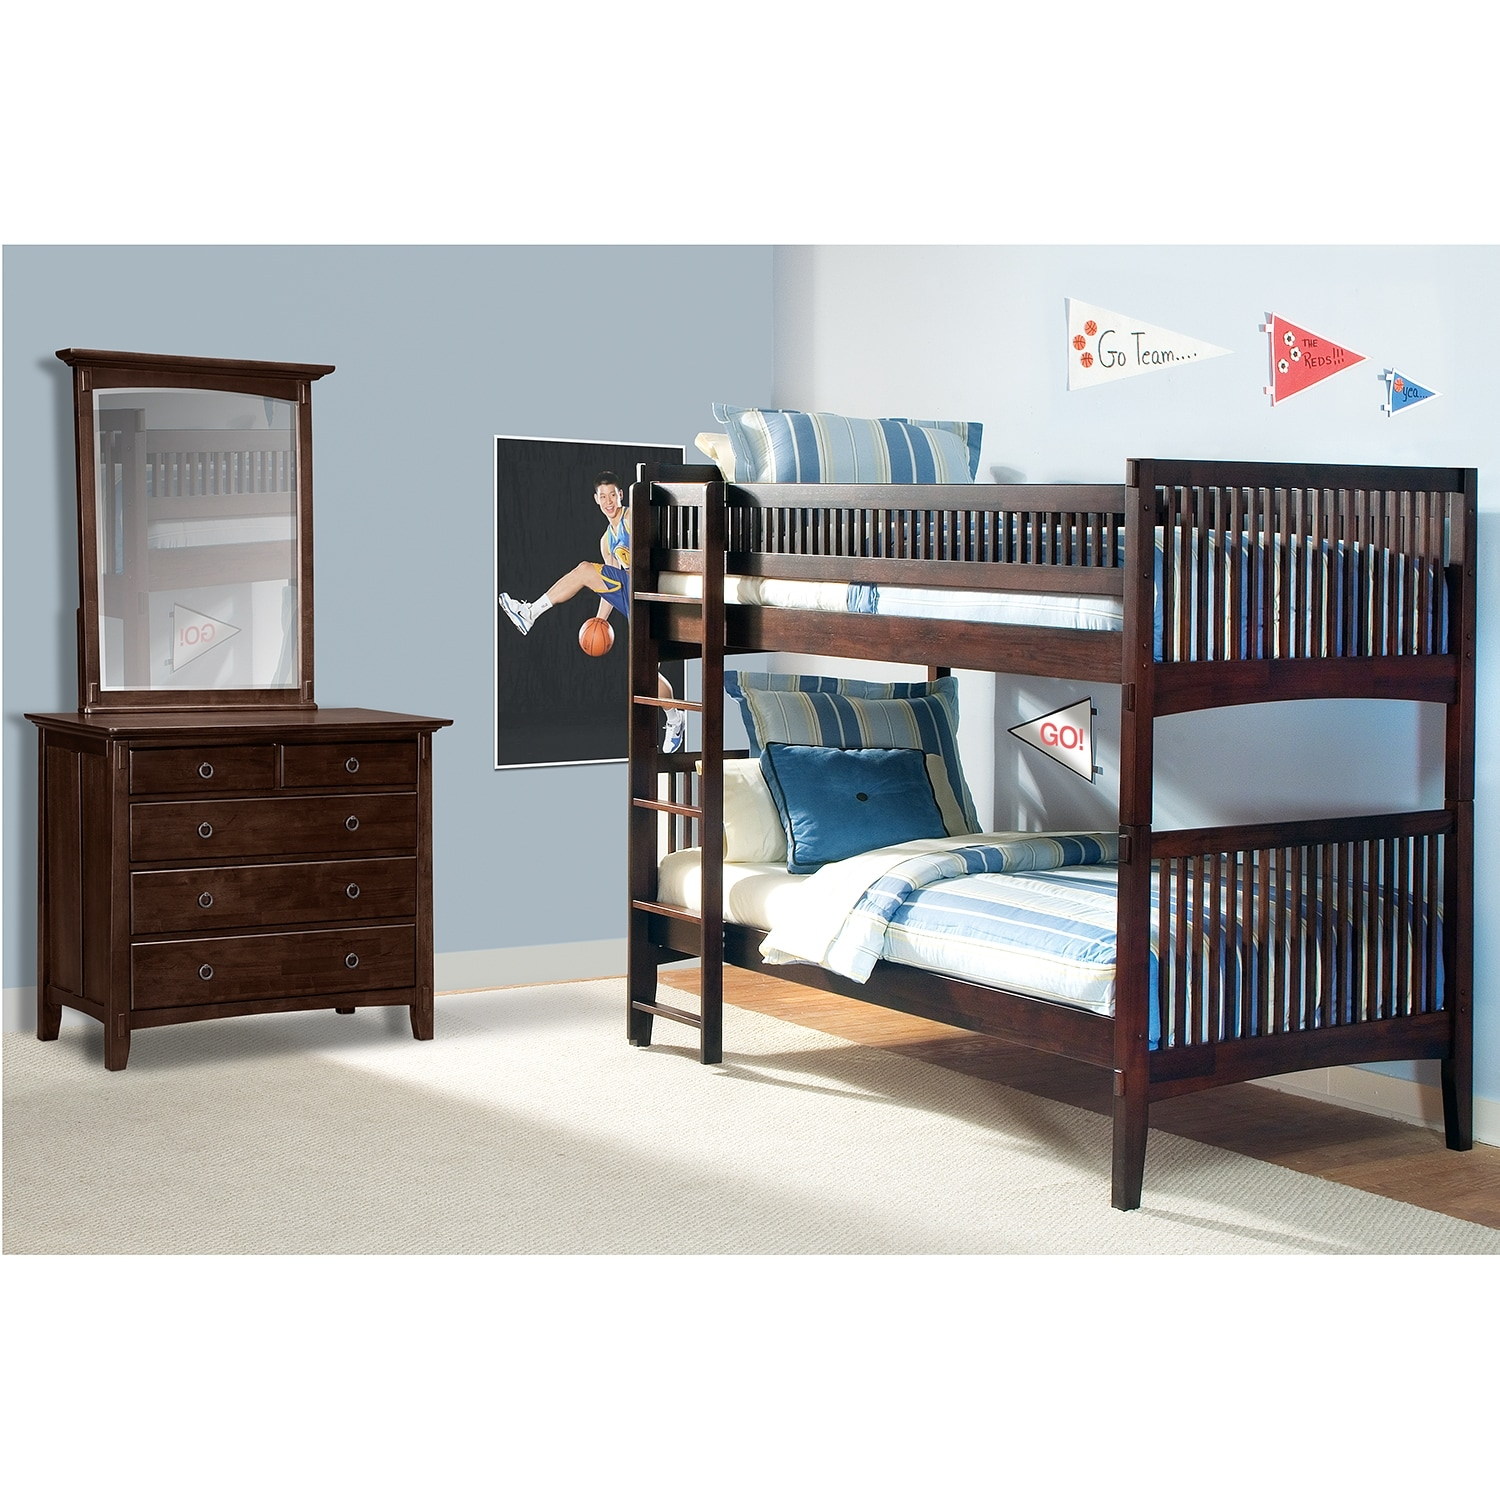 Brown Solid Wood Twin Bunk Beds Convertible American Signature